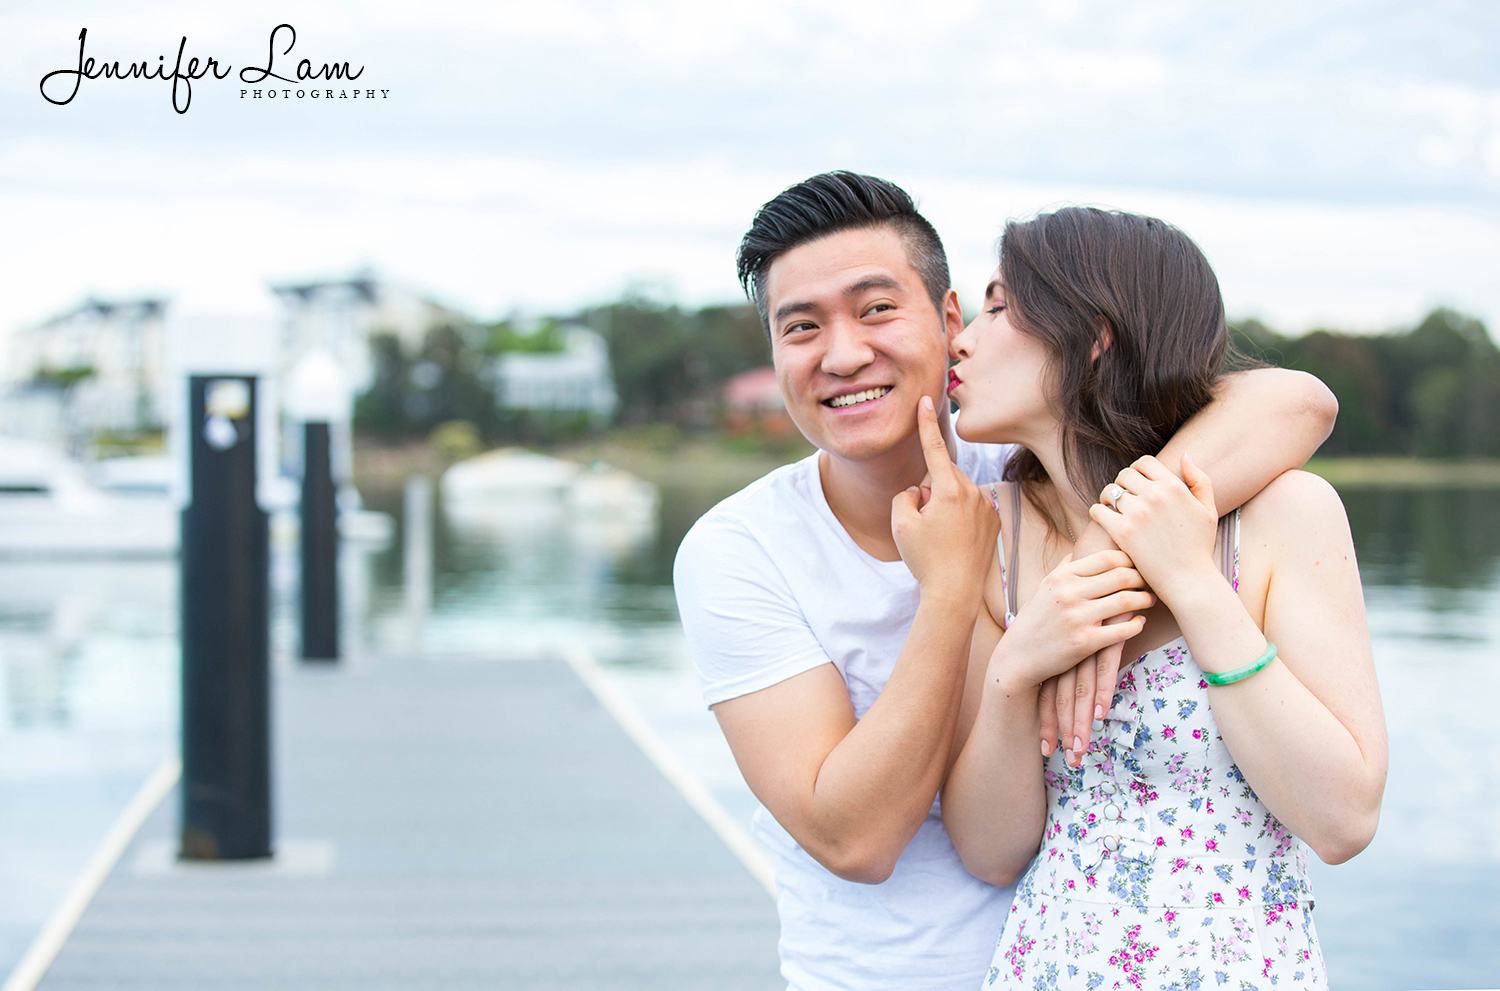 Sydney Pre-Wedding Photography - Jennifer Lam Photography (11).jpg